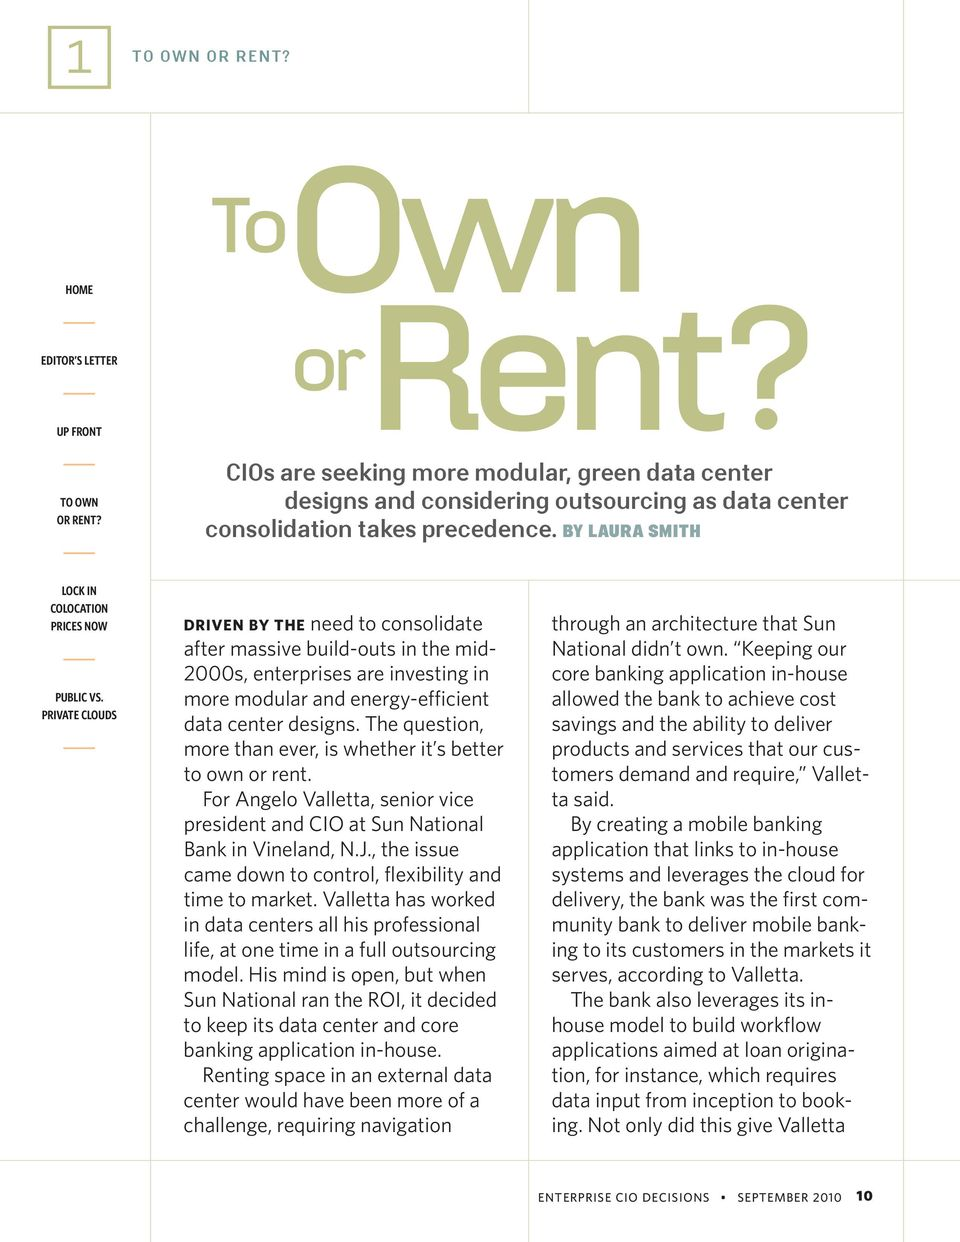 The question, more than ever, is whether it s better to own or rent. For Angelo Valletta, senior vice president and CIO at Sun National Bank in Vineland, N.J.